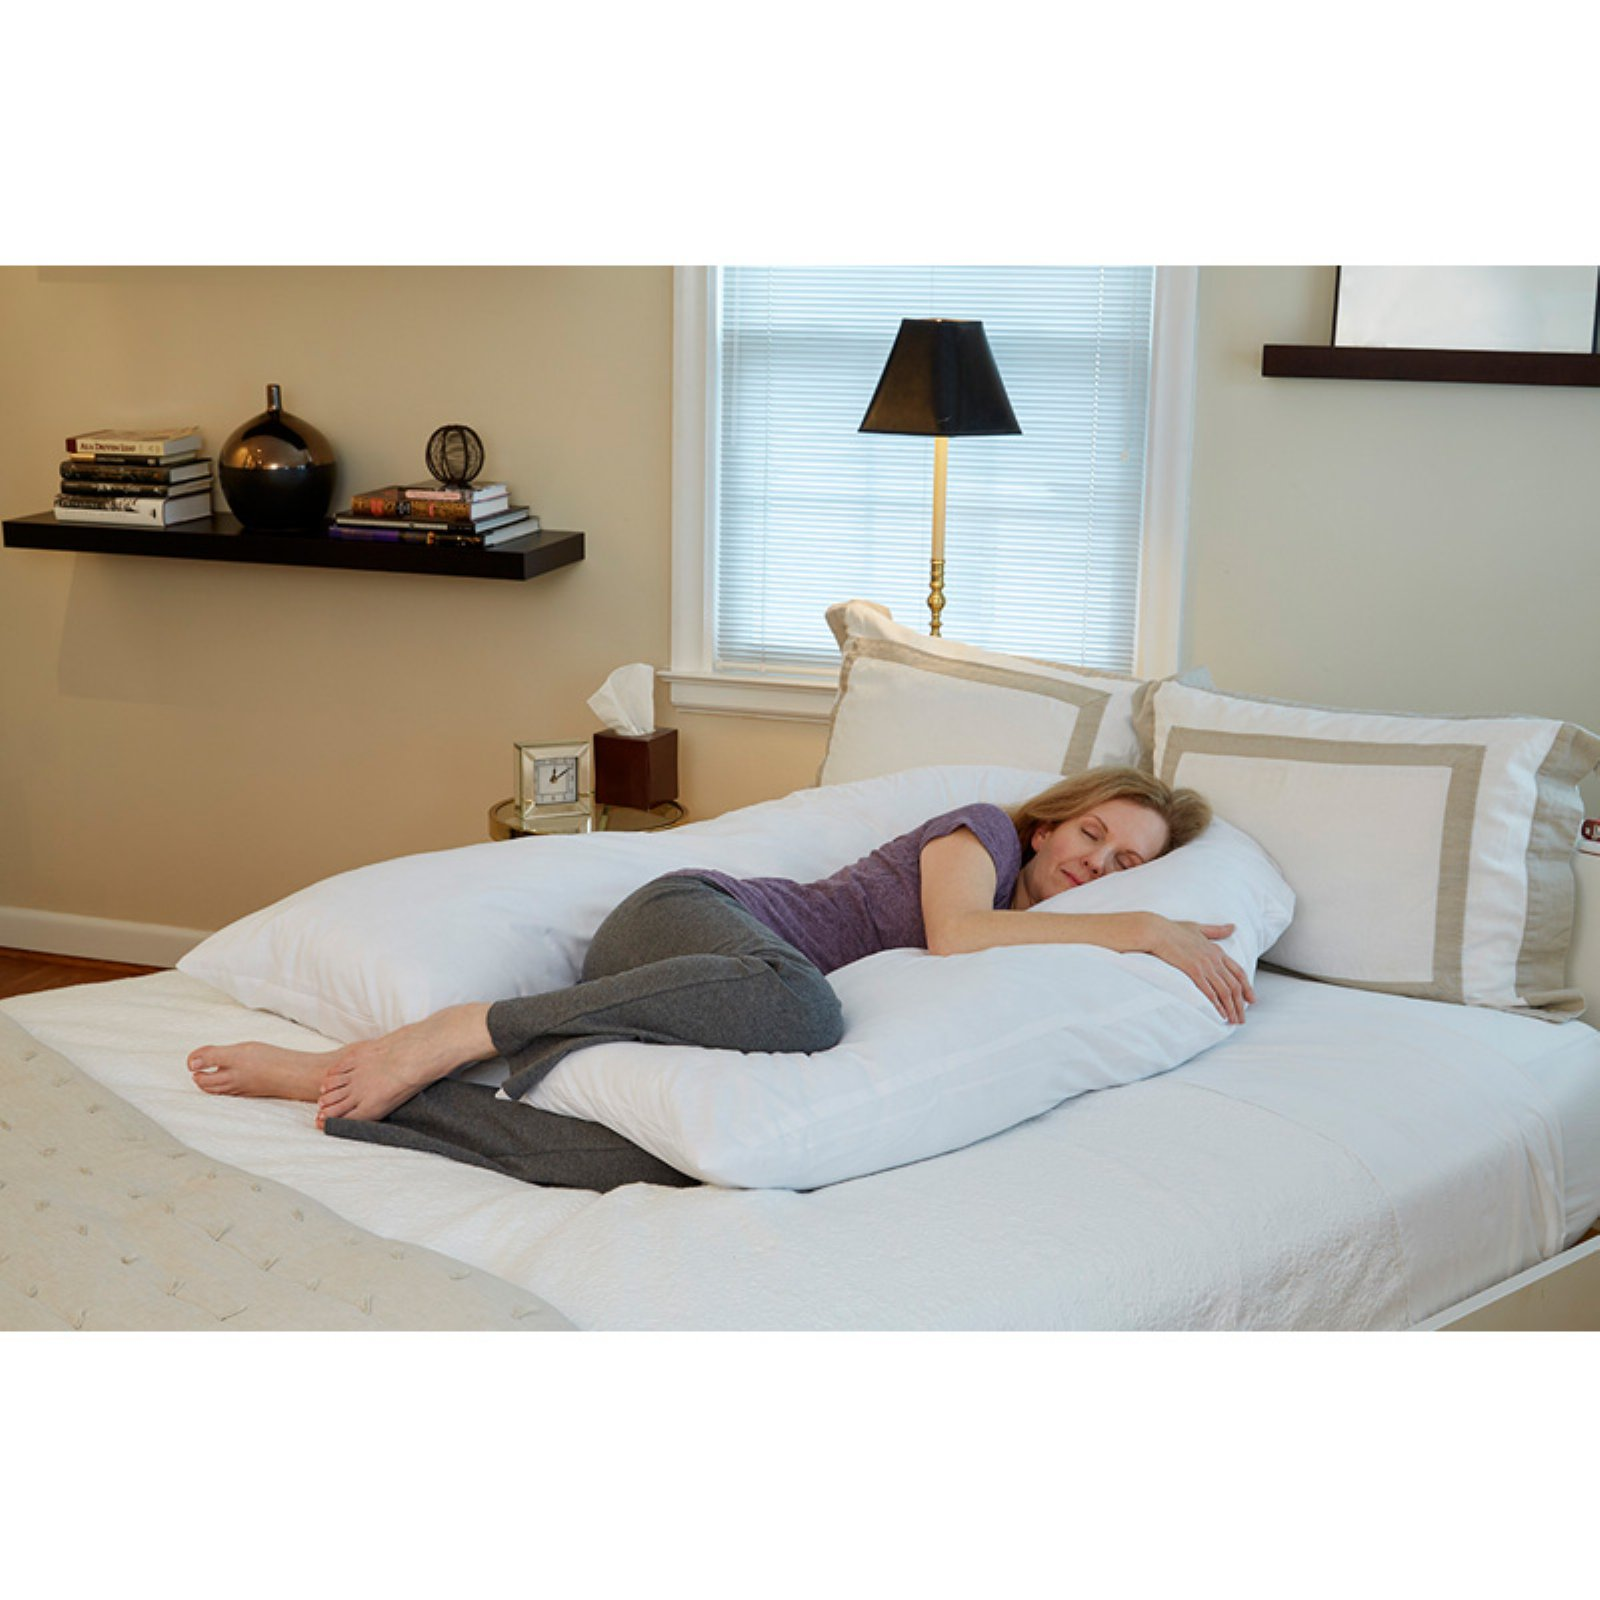 "Hermell Total U-Shaped Body Pillow with White Cover, Offers Relief for Neck and Back Pain, Supportive Pillow, Ideal During Pregnancy, Cover is Removable and Machine Washable, 51"" x 43"" x 6""- BP7300MO"